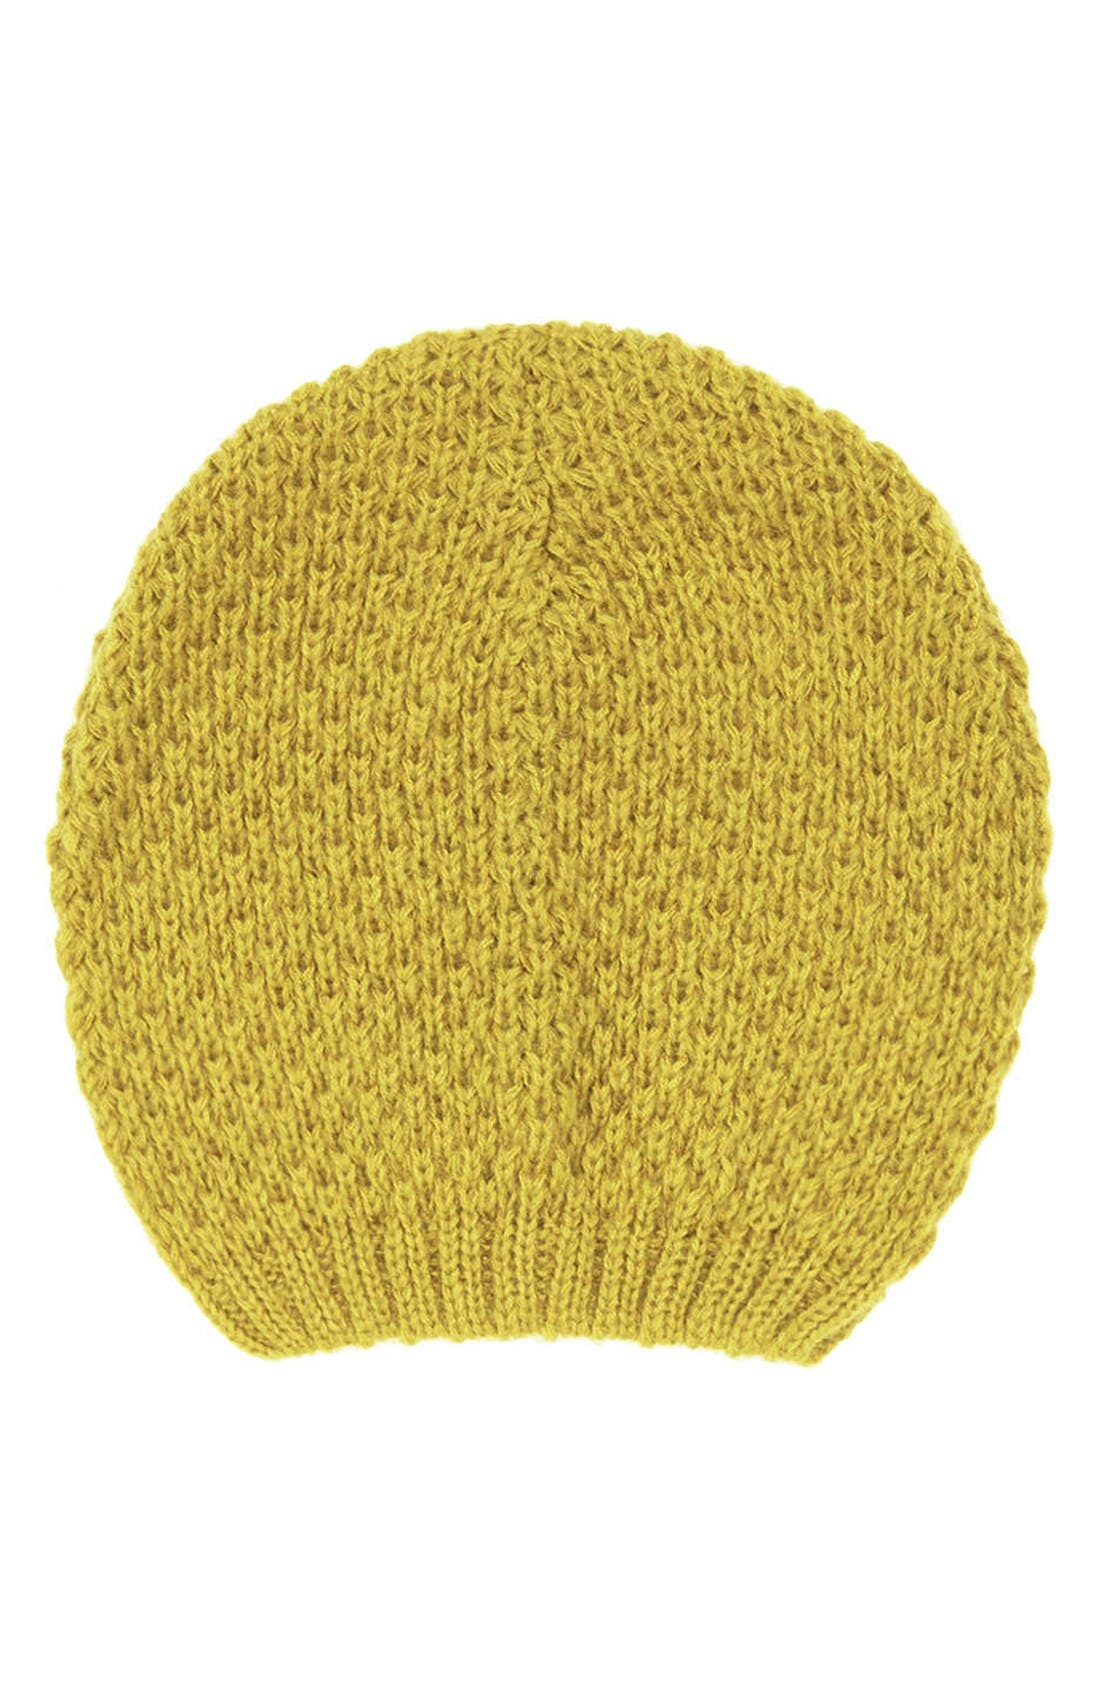 Alternate Image 1 Selected - Topshop Basket Stitch Beanie